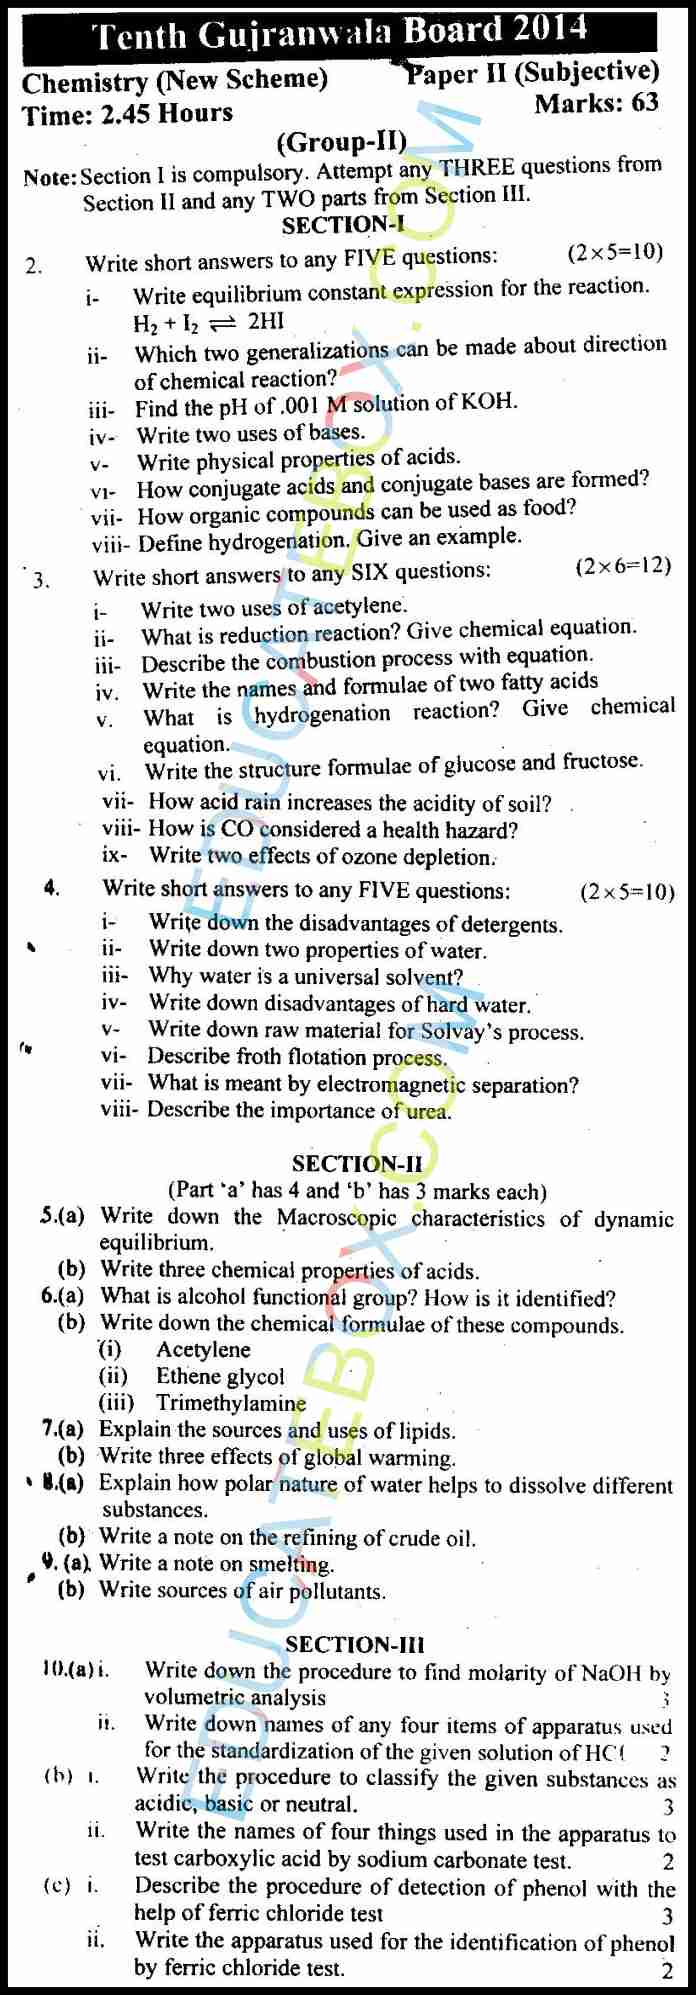 Past Paper Class 10 Chemistry Gujranwala Board 2014 Subjective Type Group 2